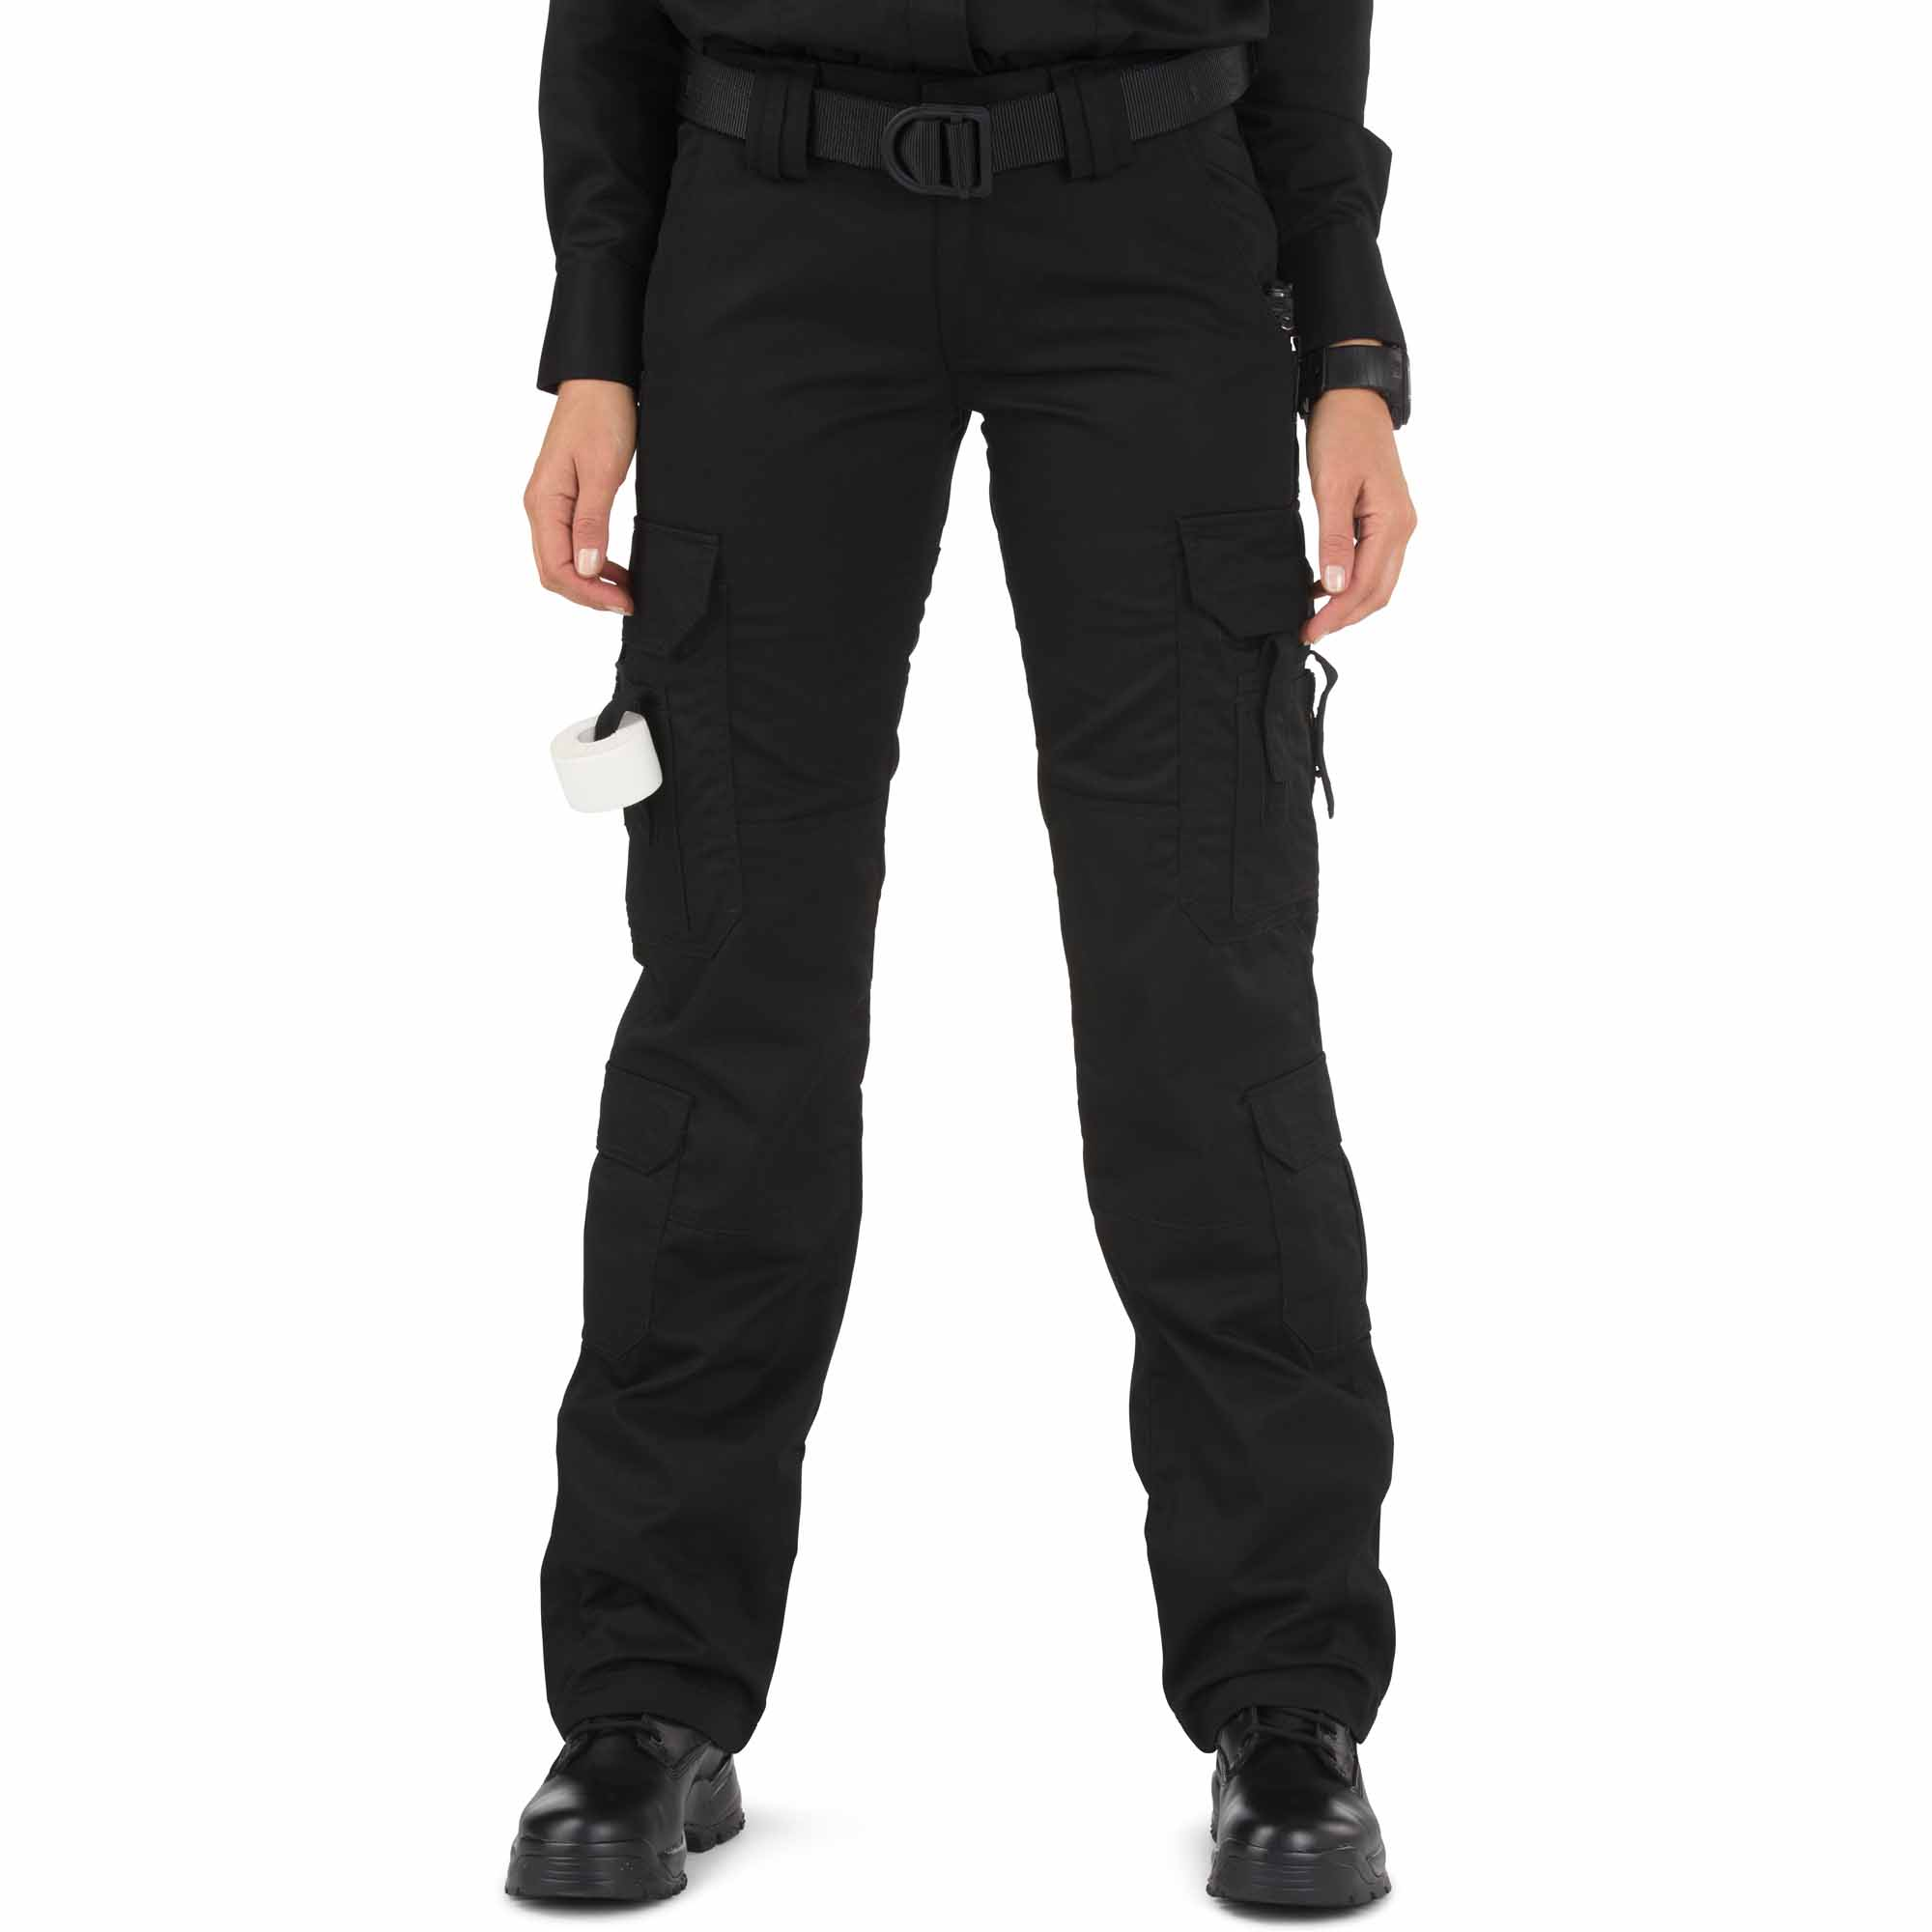 5.11 Tactical Women's TACLITE EMS Pant (Black), Size 10/Long (Cargo Pant) thumbnail